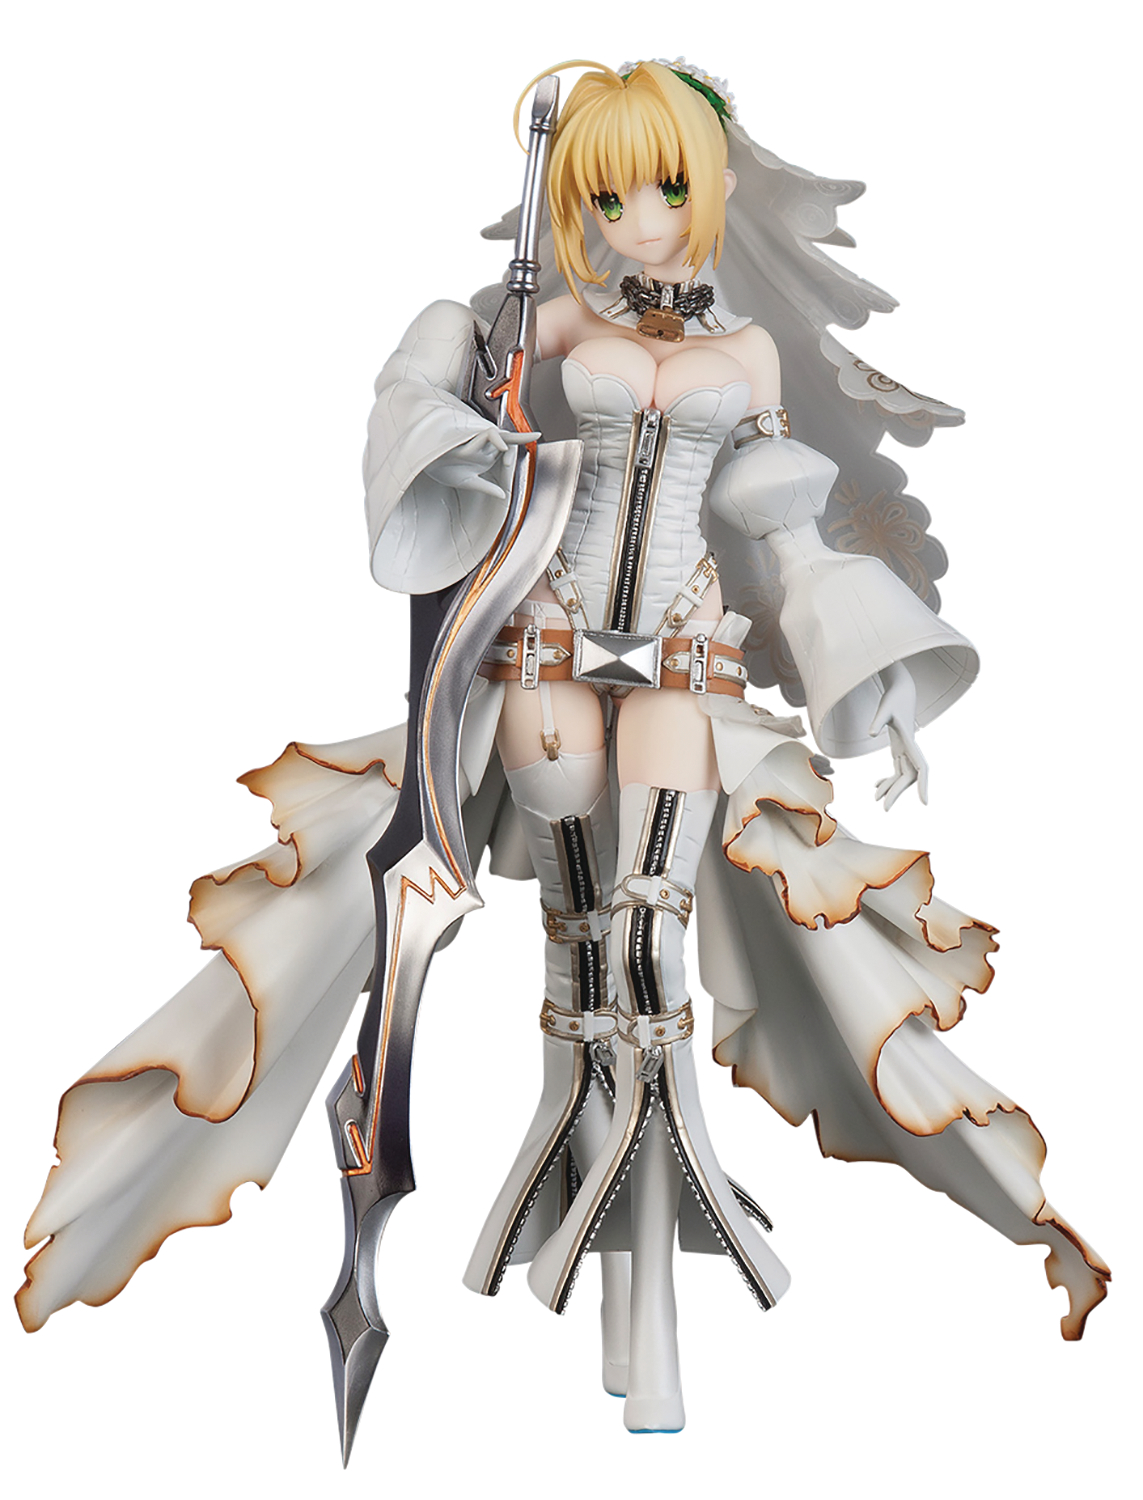 FATE GRAND ORDER SABER NERO CLAUDIUS PVC FIG BRIDE VER